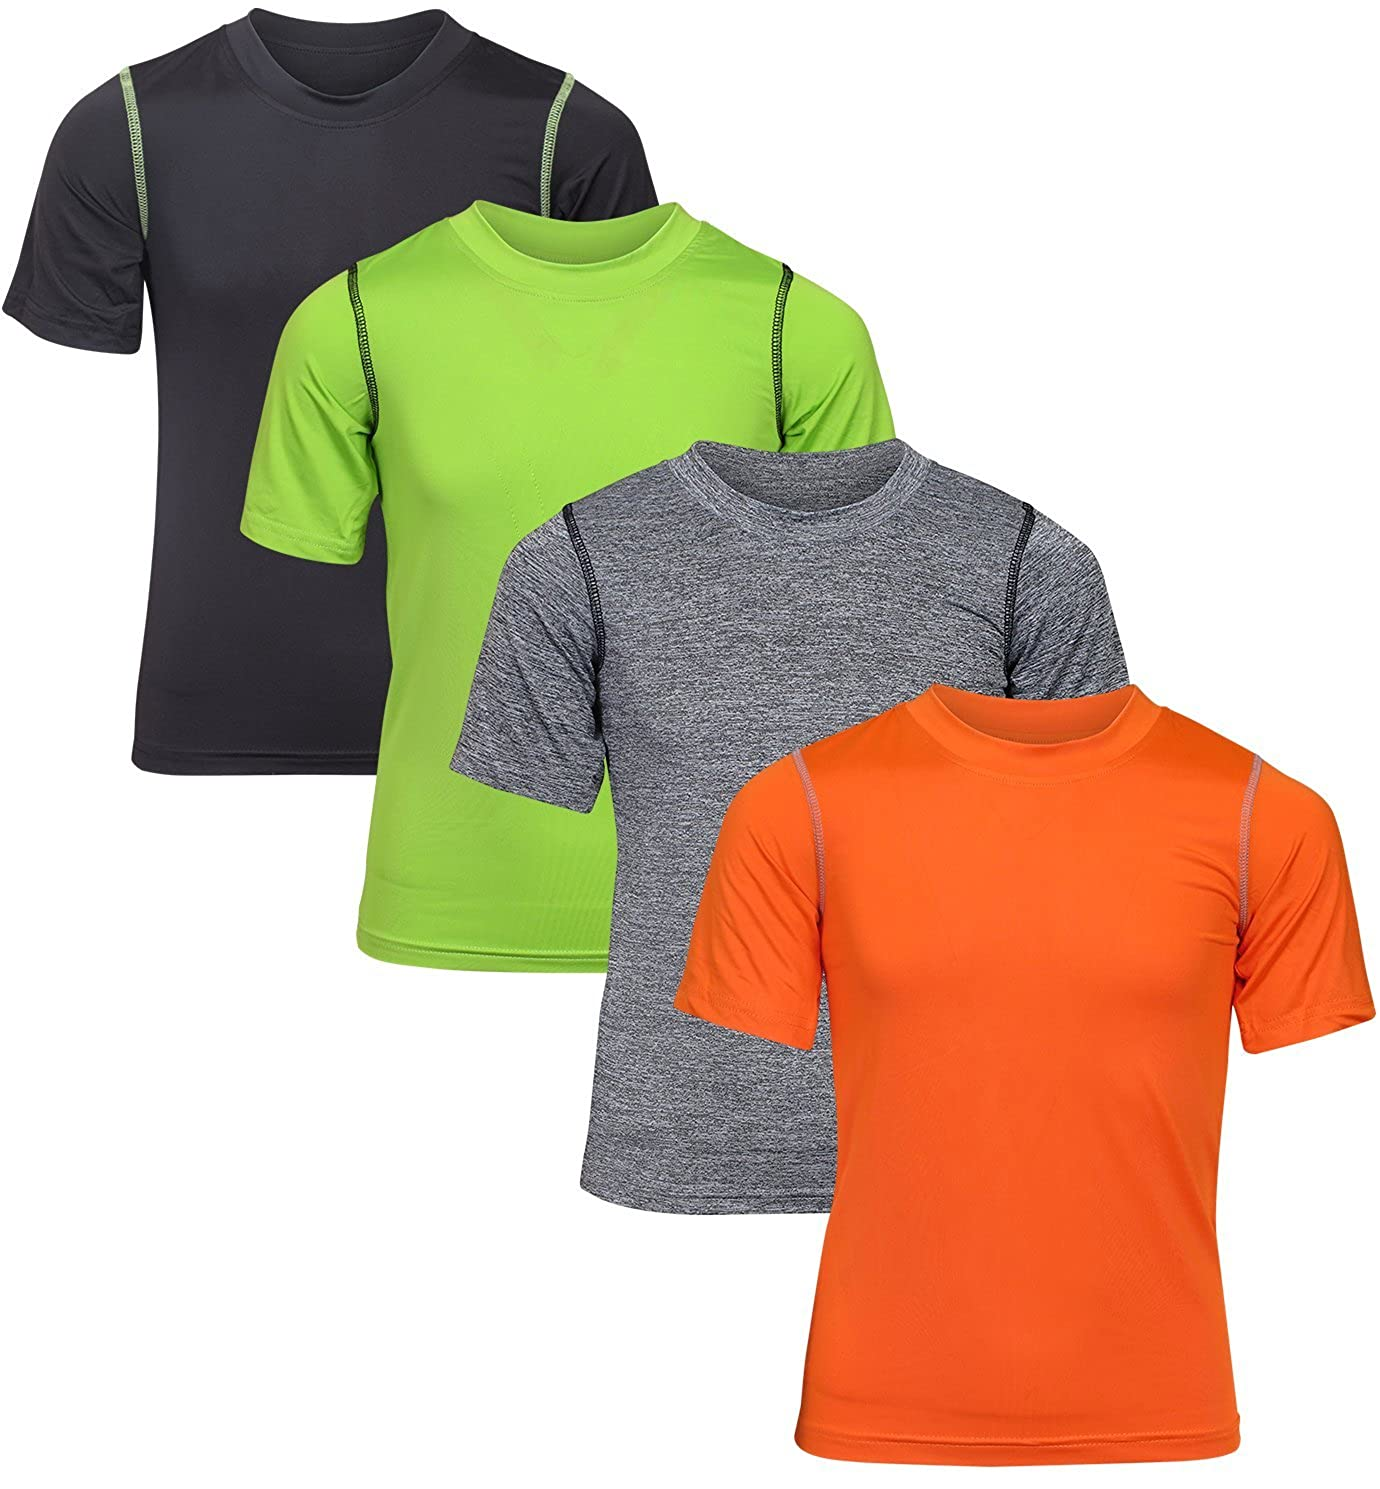 Black Bear Boy's Performance Dry-Fit T-Shirts (4 Pack)